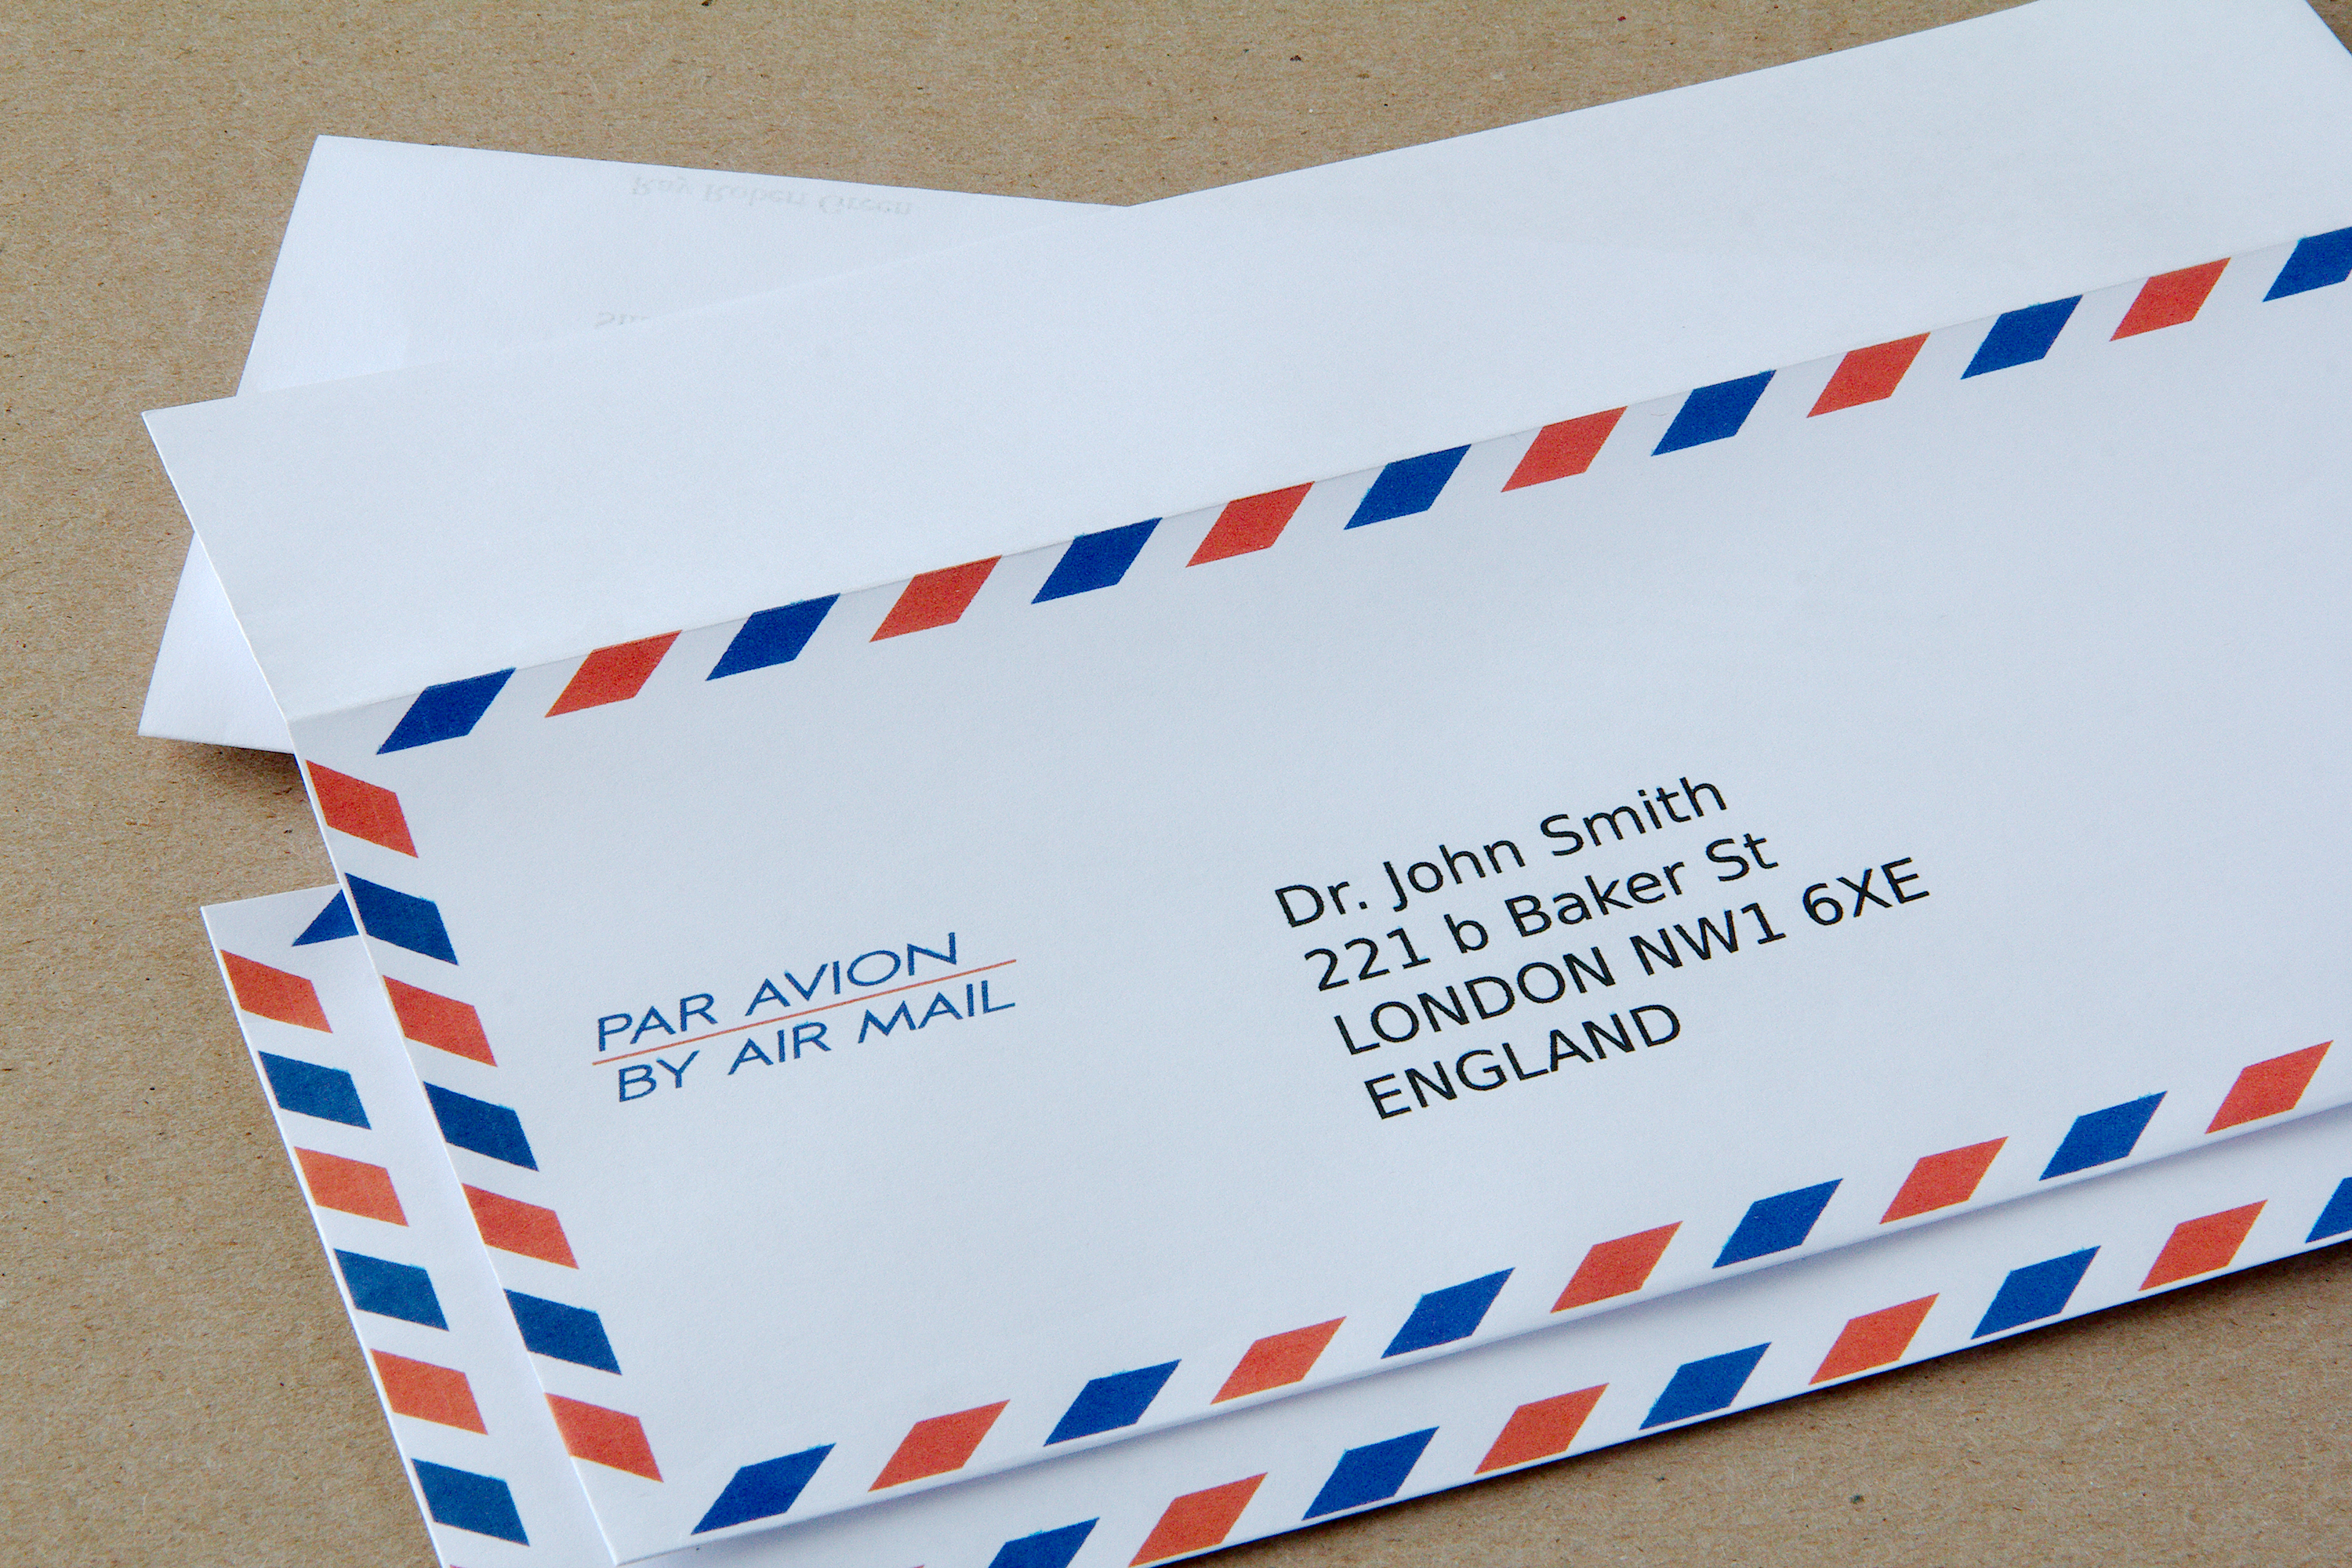 place the mail in an envelope you can put letters in envelopes designed for air mail with blue and red markings around the edges with the words air